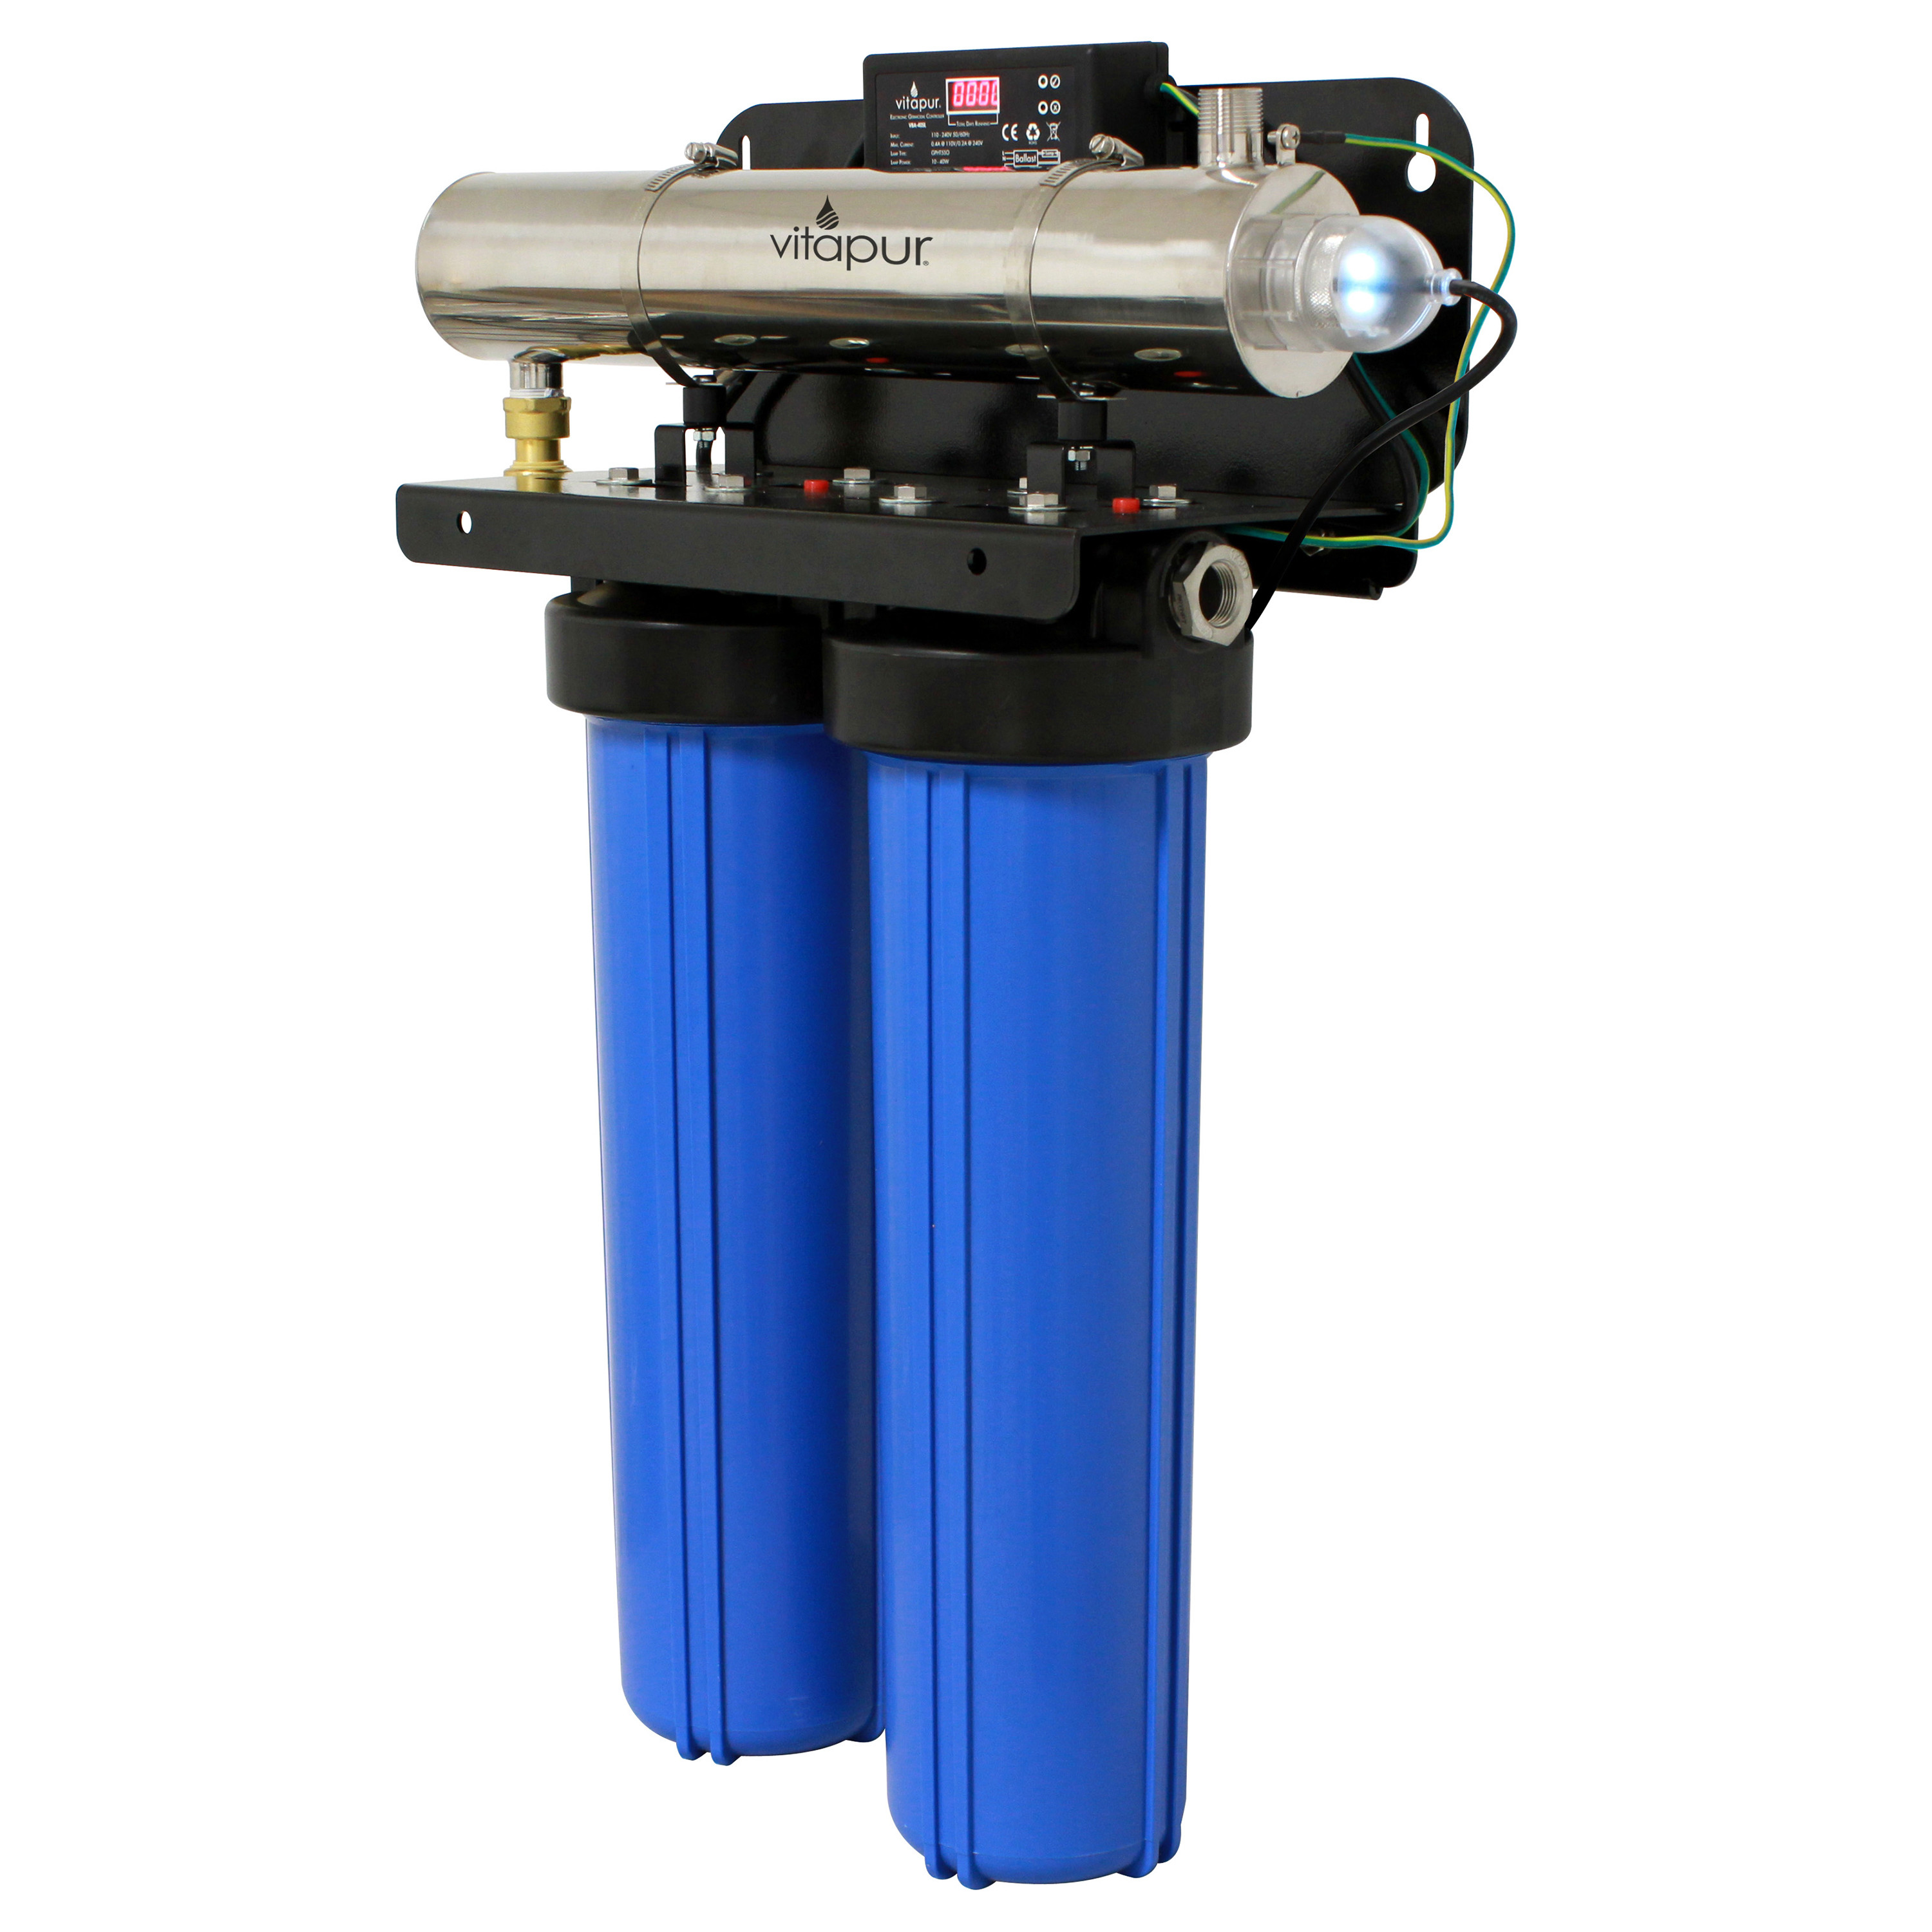 vitapur-Ultraviolet-Whole-House-Water-Disinfection-and-Filtration-System